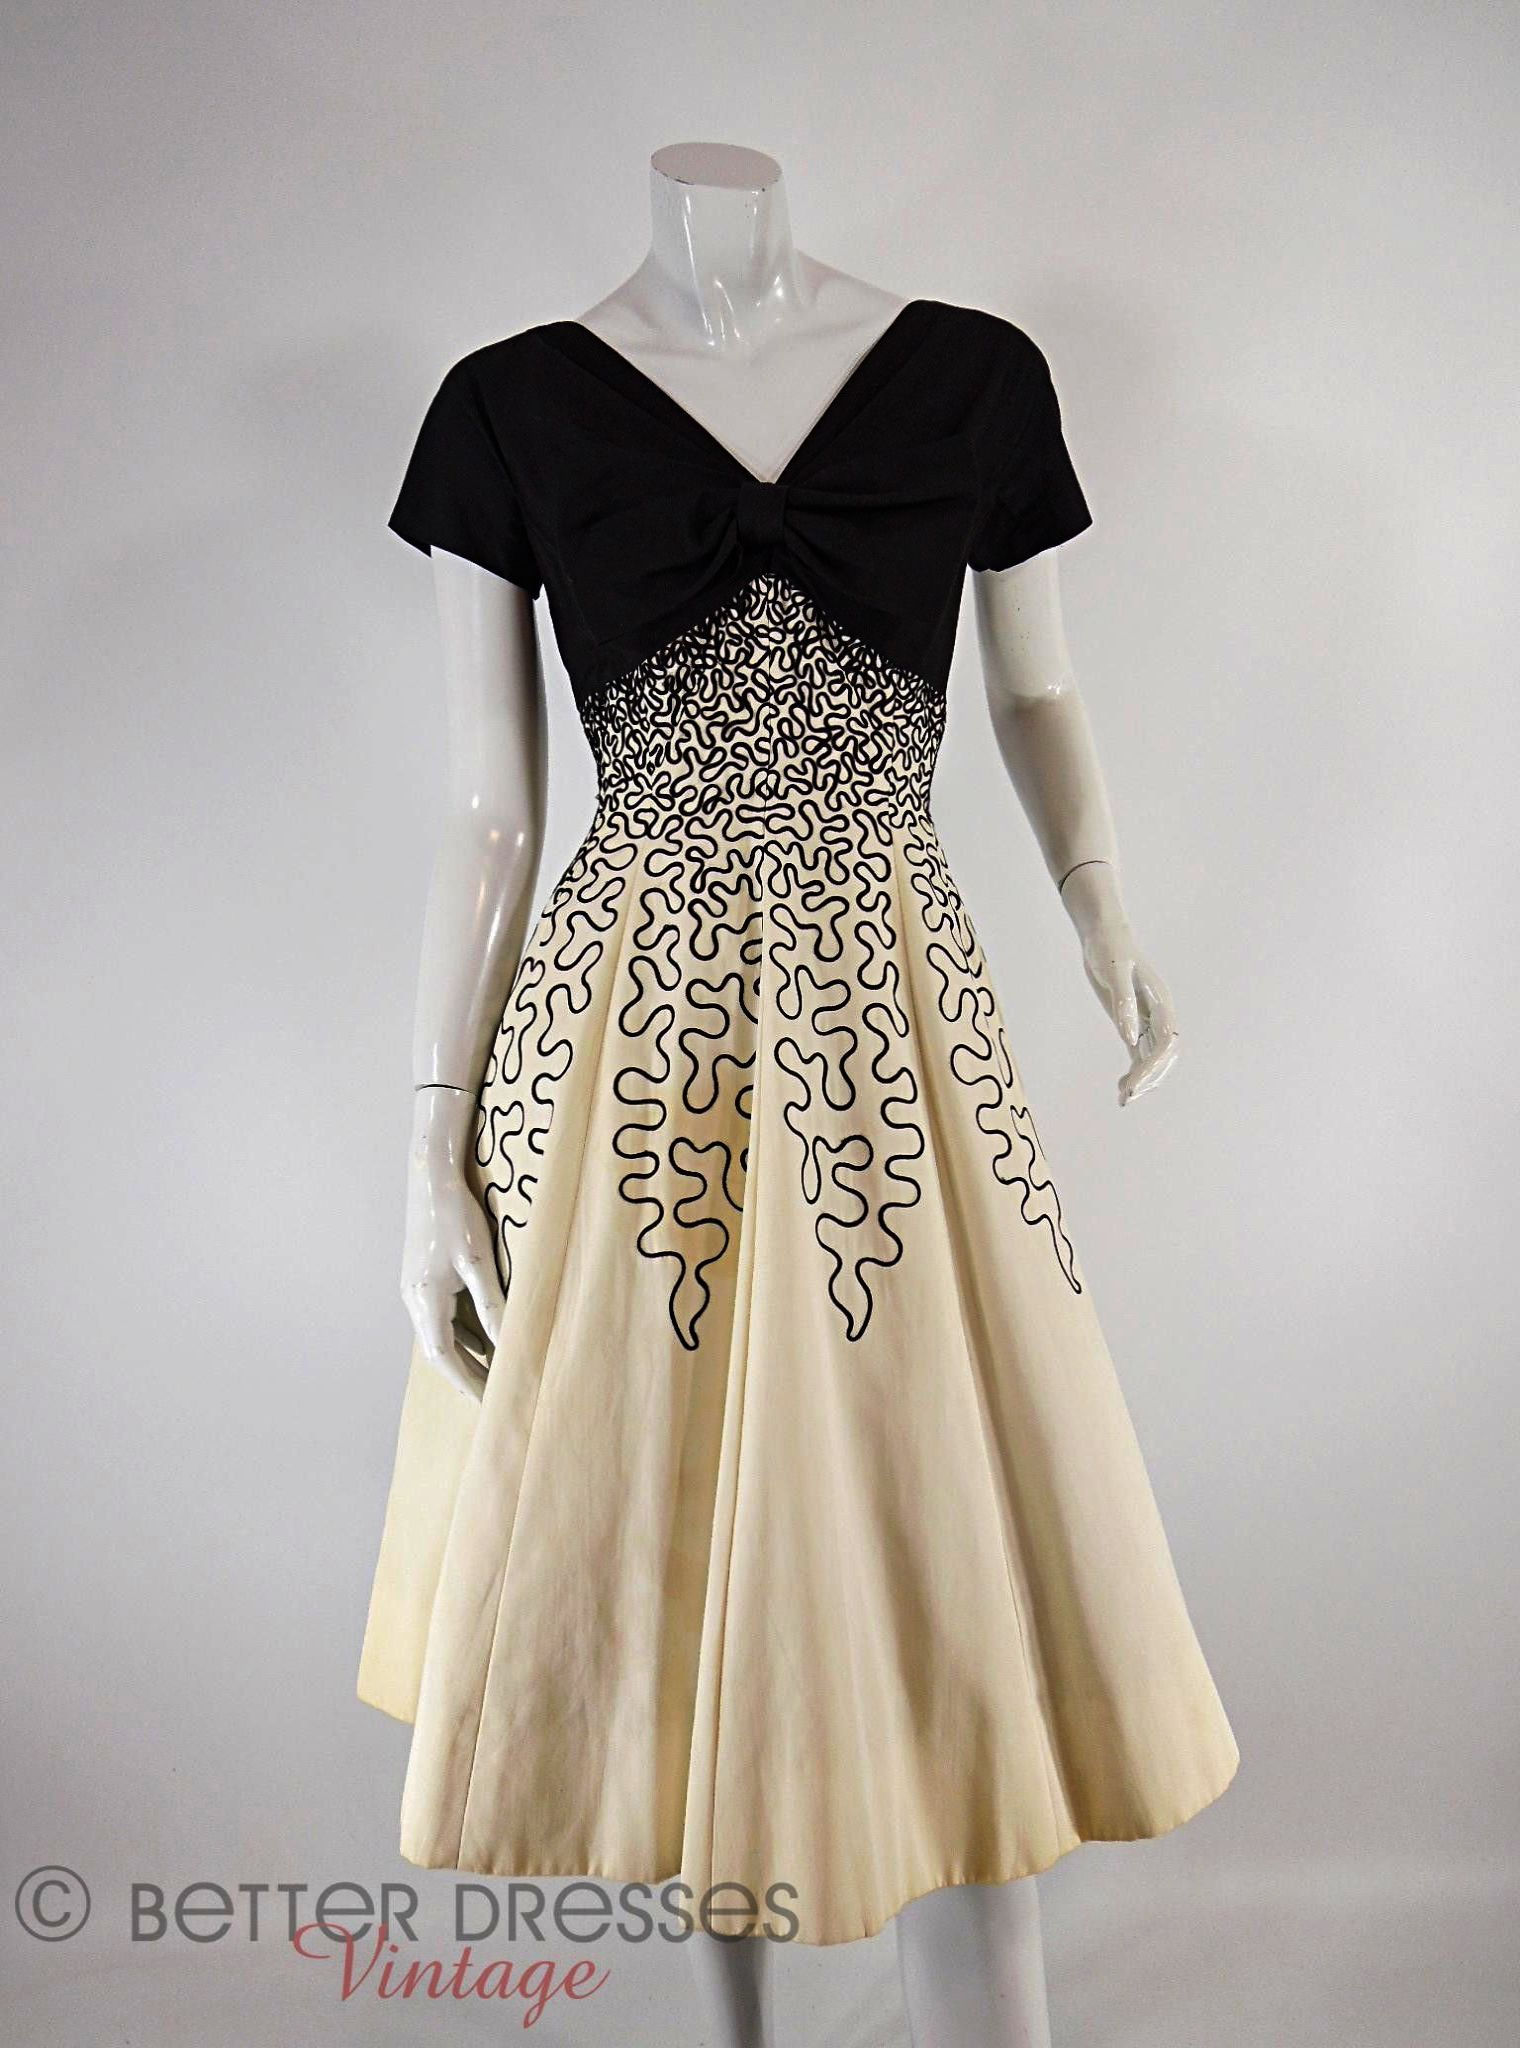 Awesome Vintage 1950 S Dresses For Sale Uk Twitter Vintage Dresses Vintage Outfits Dresses